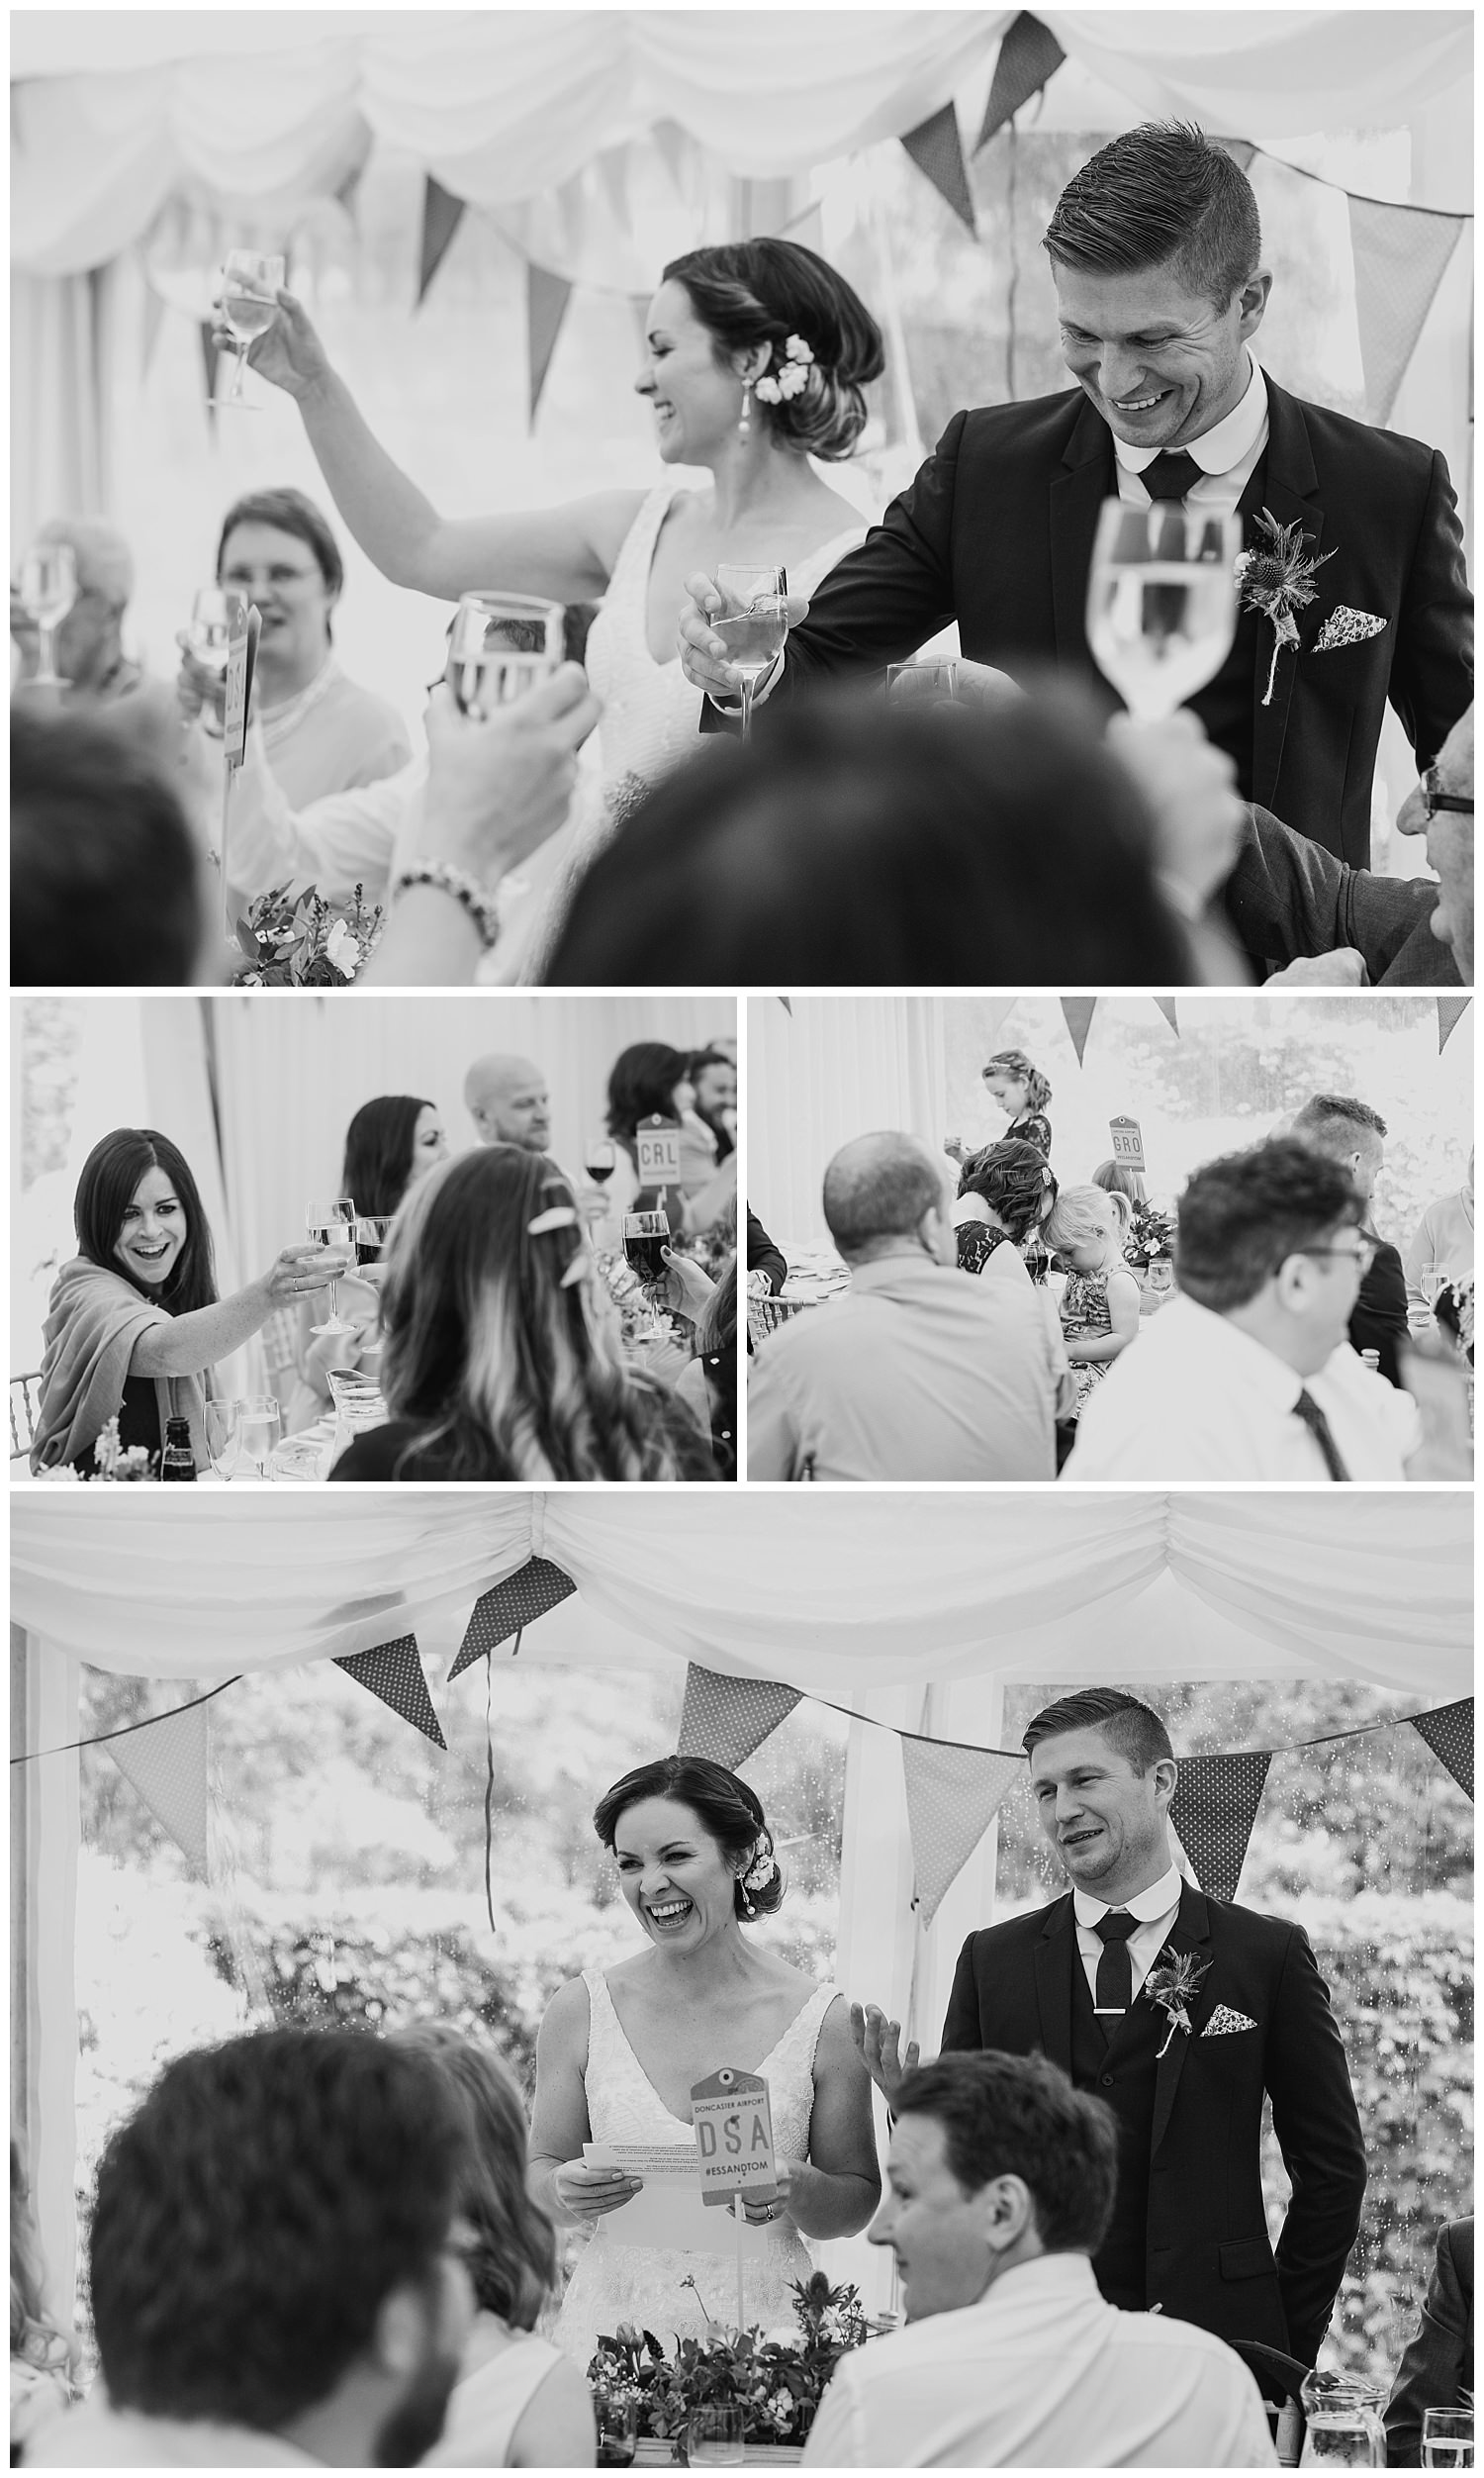 e+t_ballilogue_kilkenny_wedding_photographer_liviafigueiredo_172.jpg